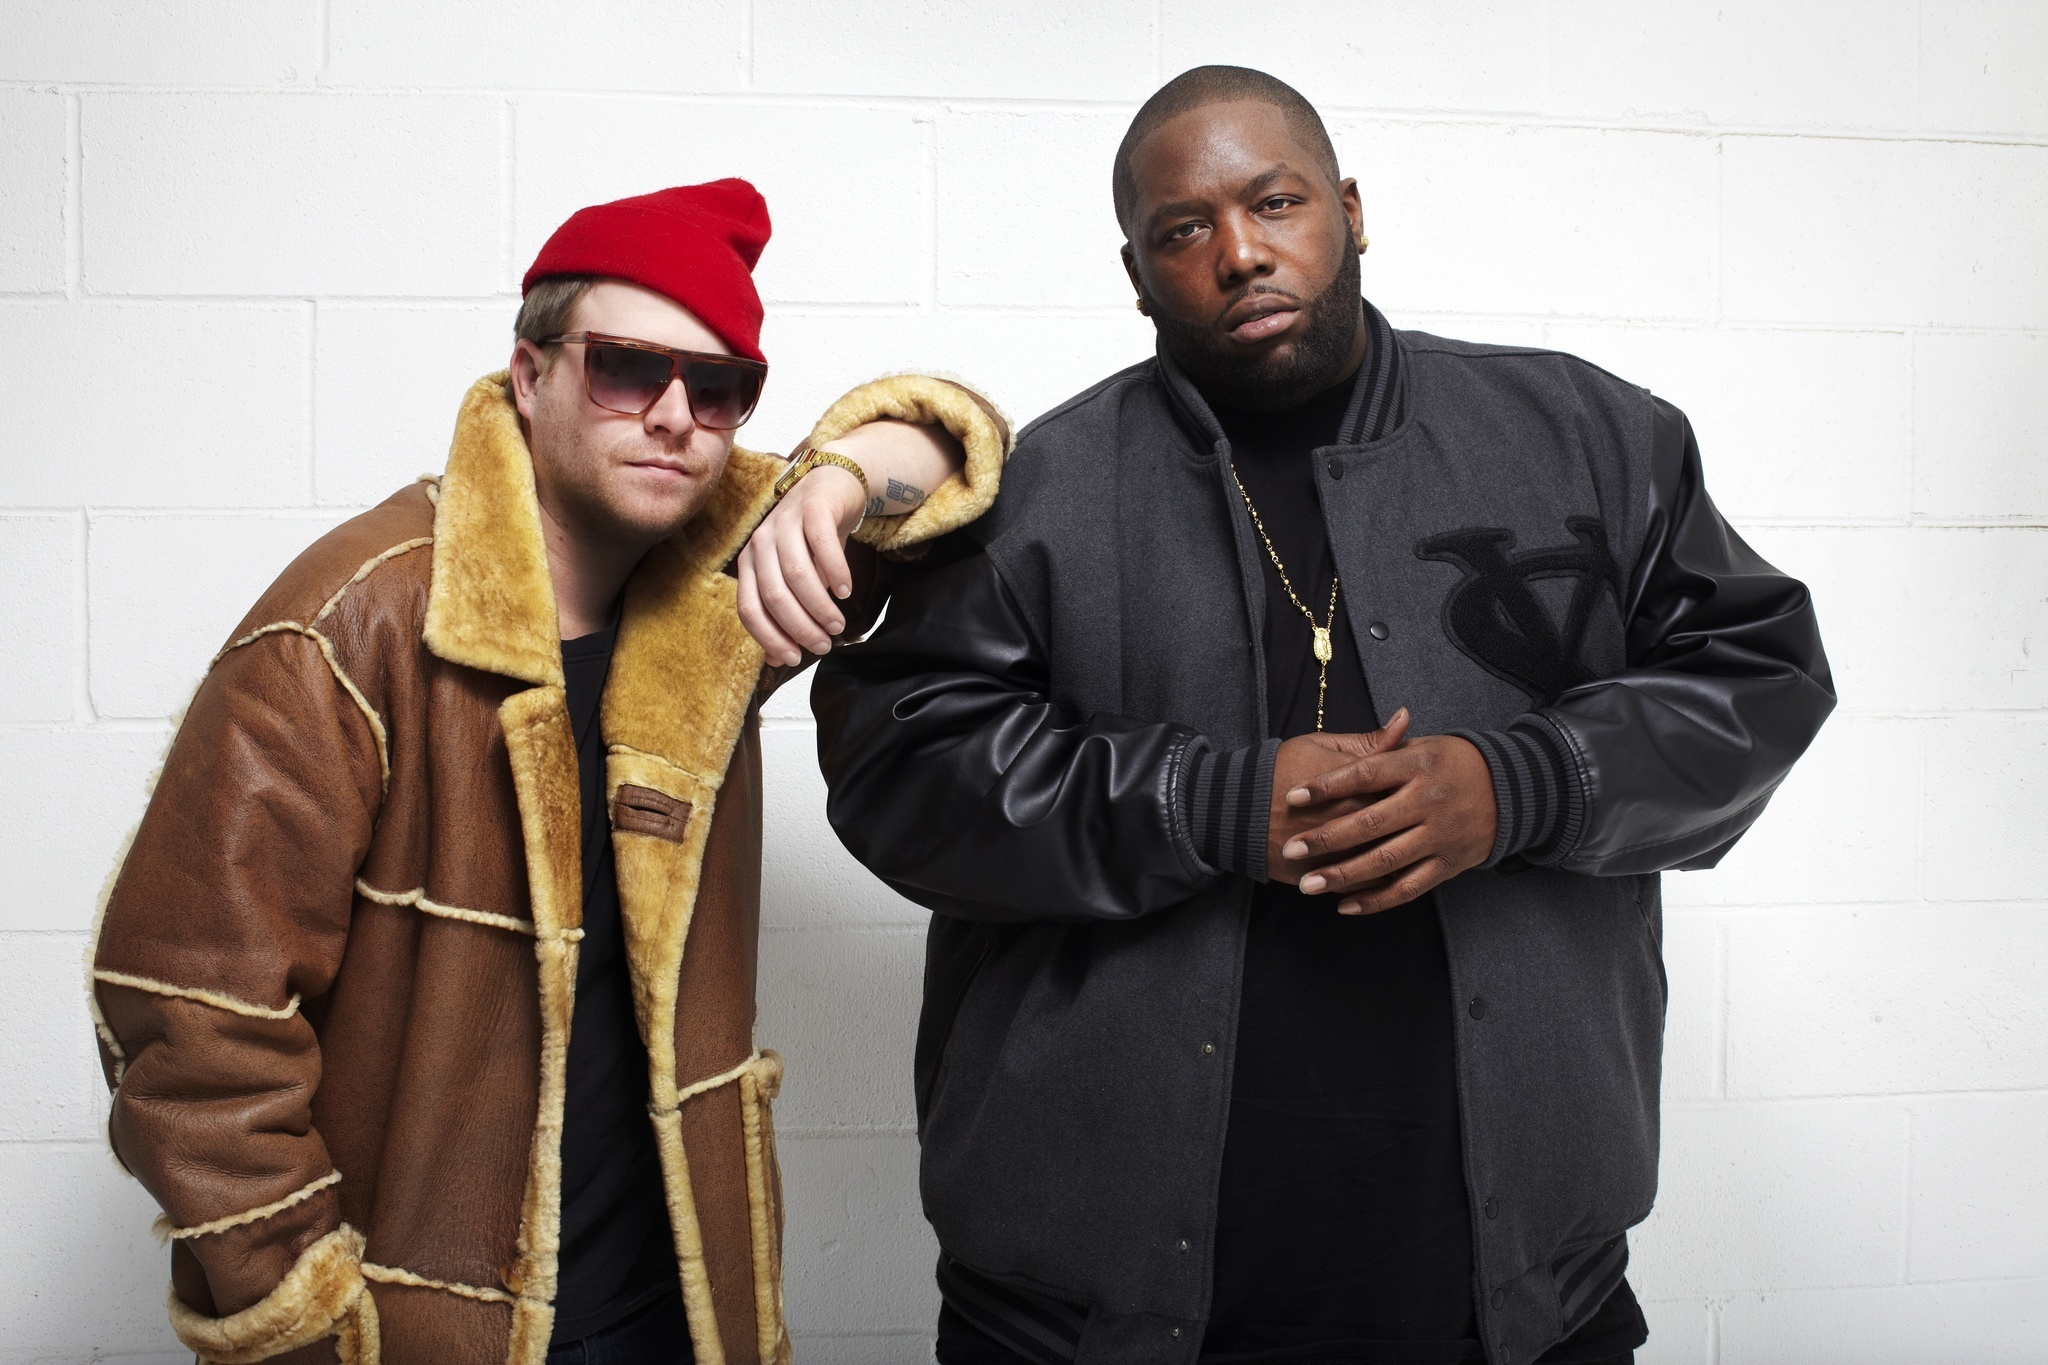 Run the Jewels + The Gaslamp Killer + Spark Master Tape + Cuz